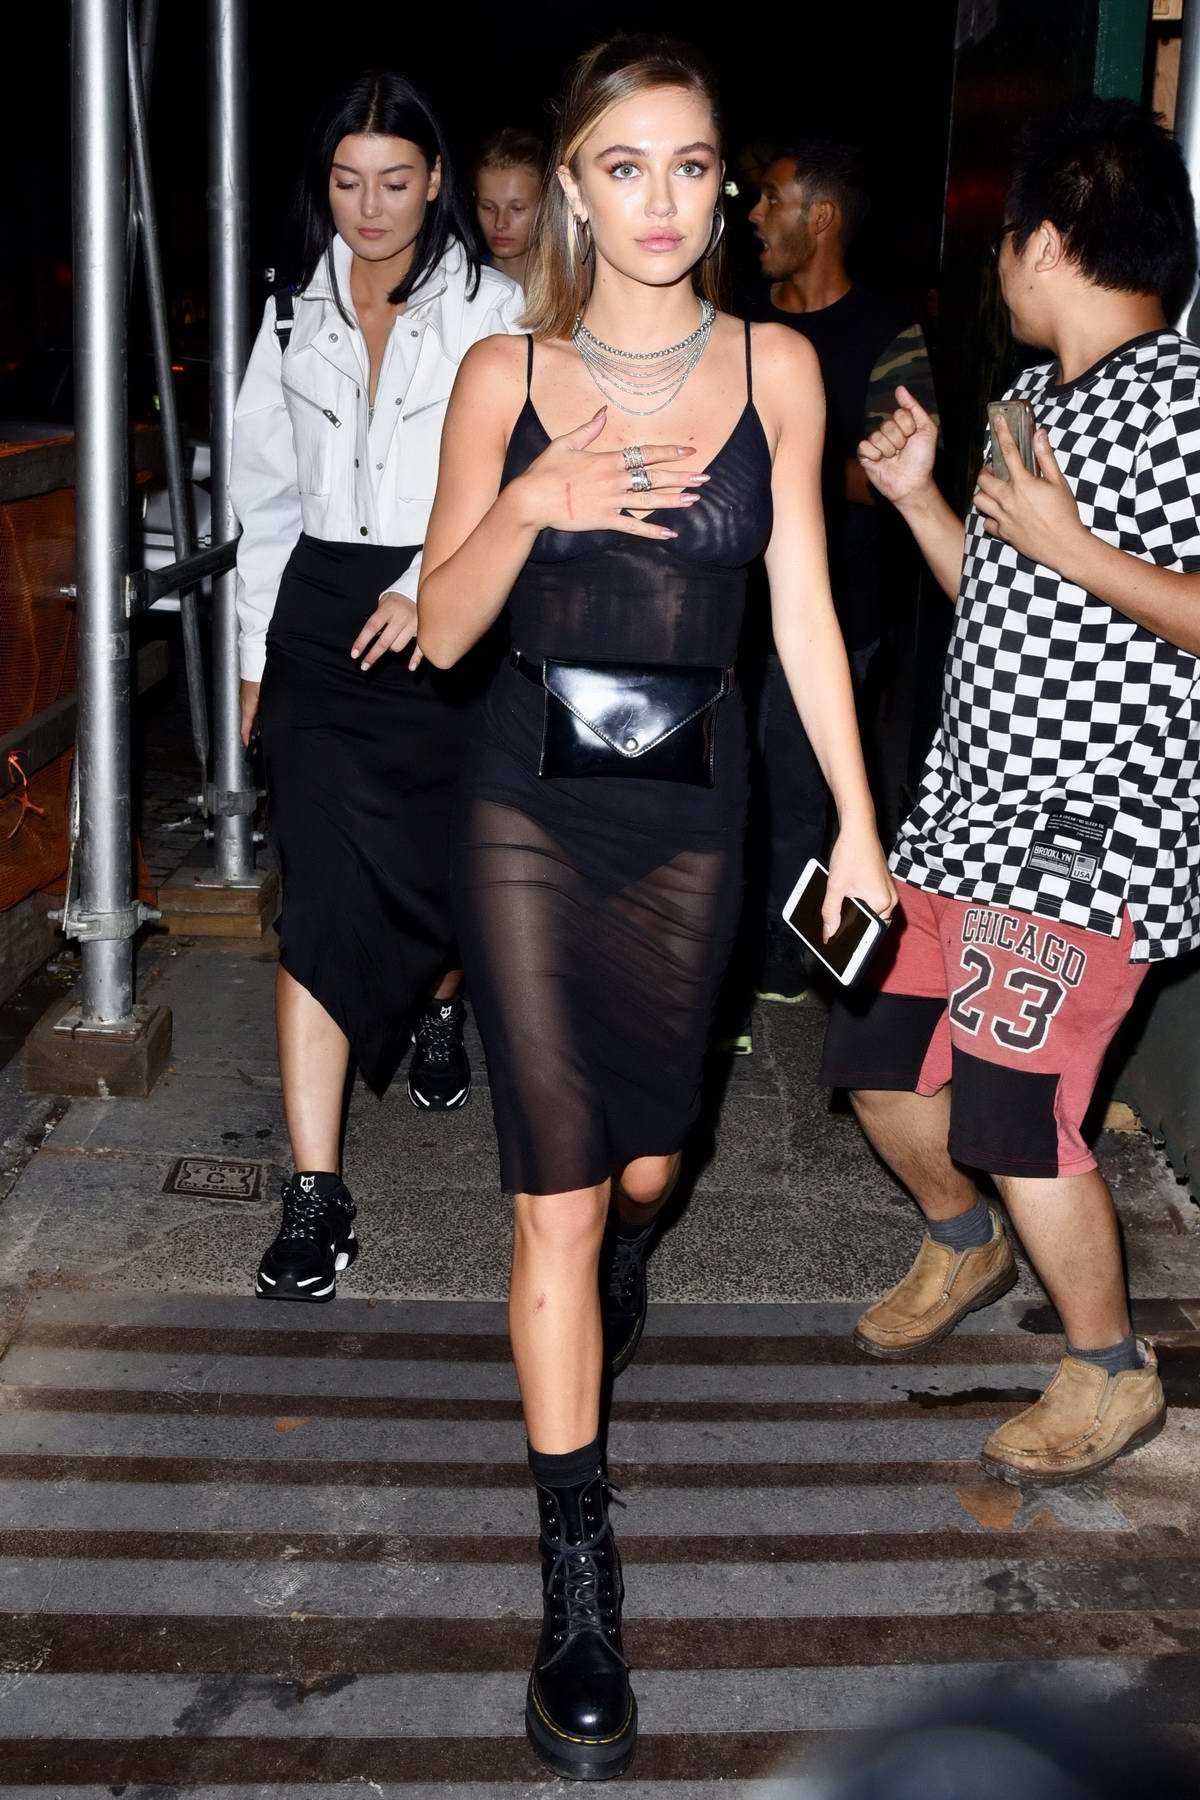 Delilah Hamlin spotted in a sheer black dress during a night out with friends in New York City